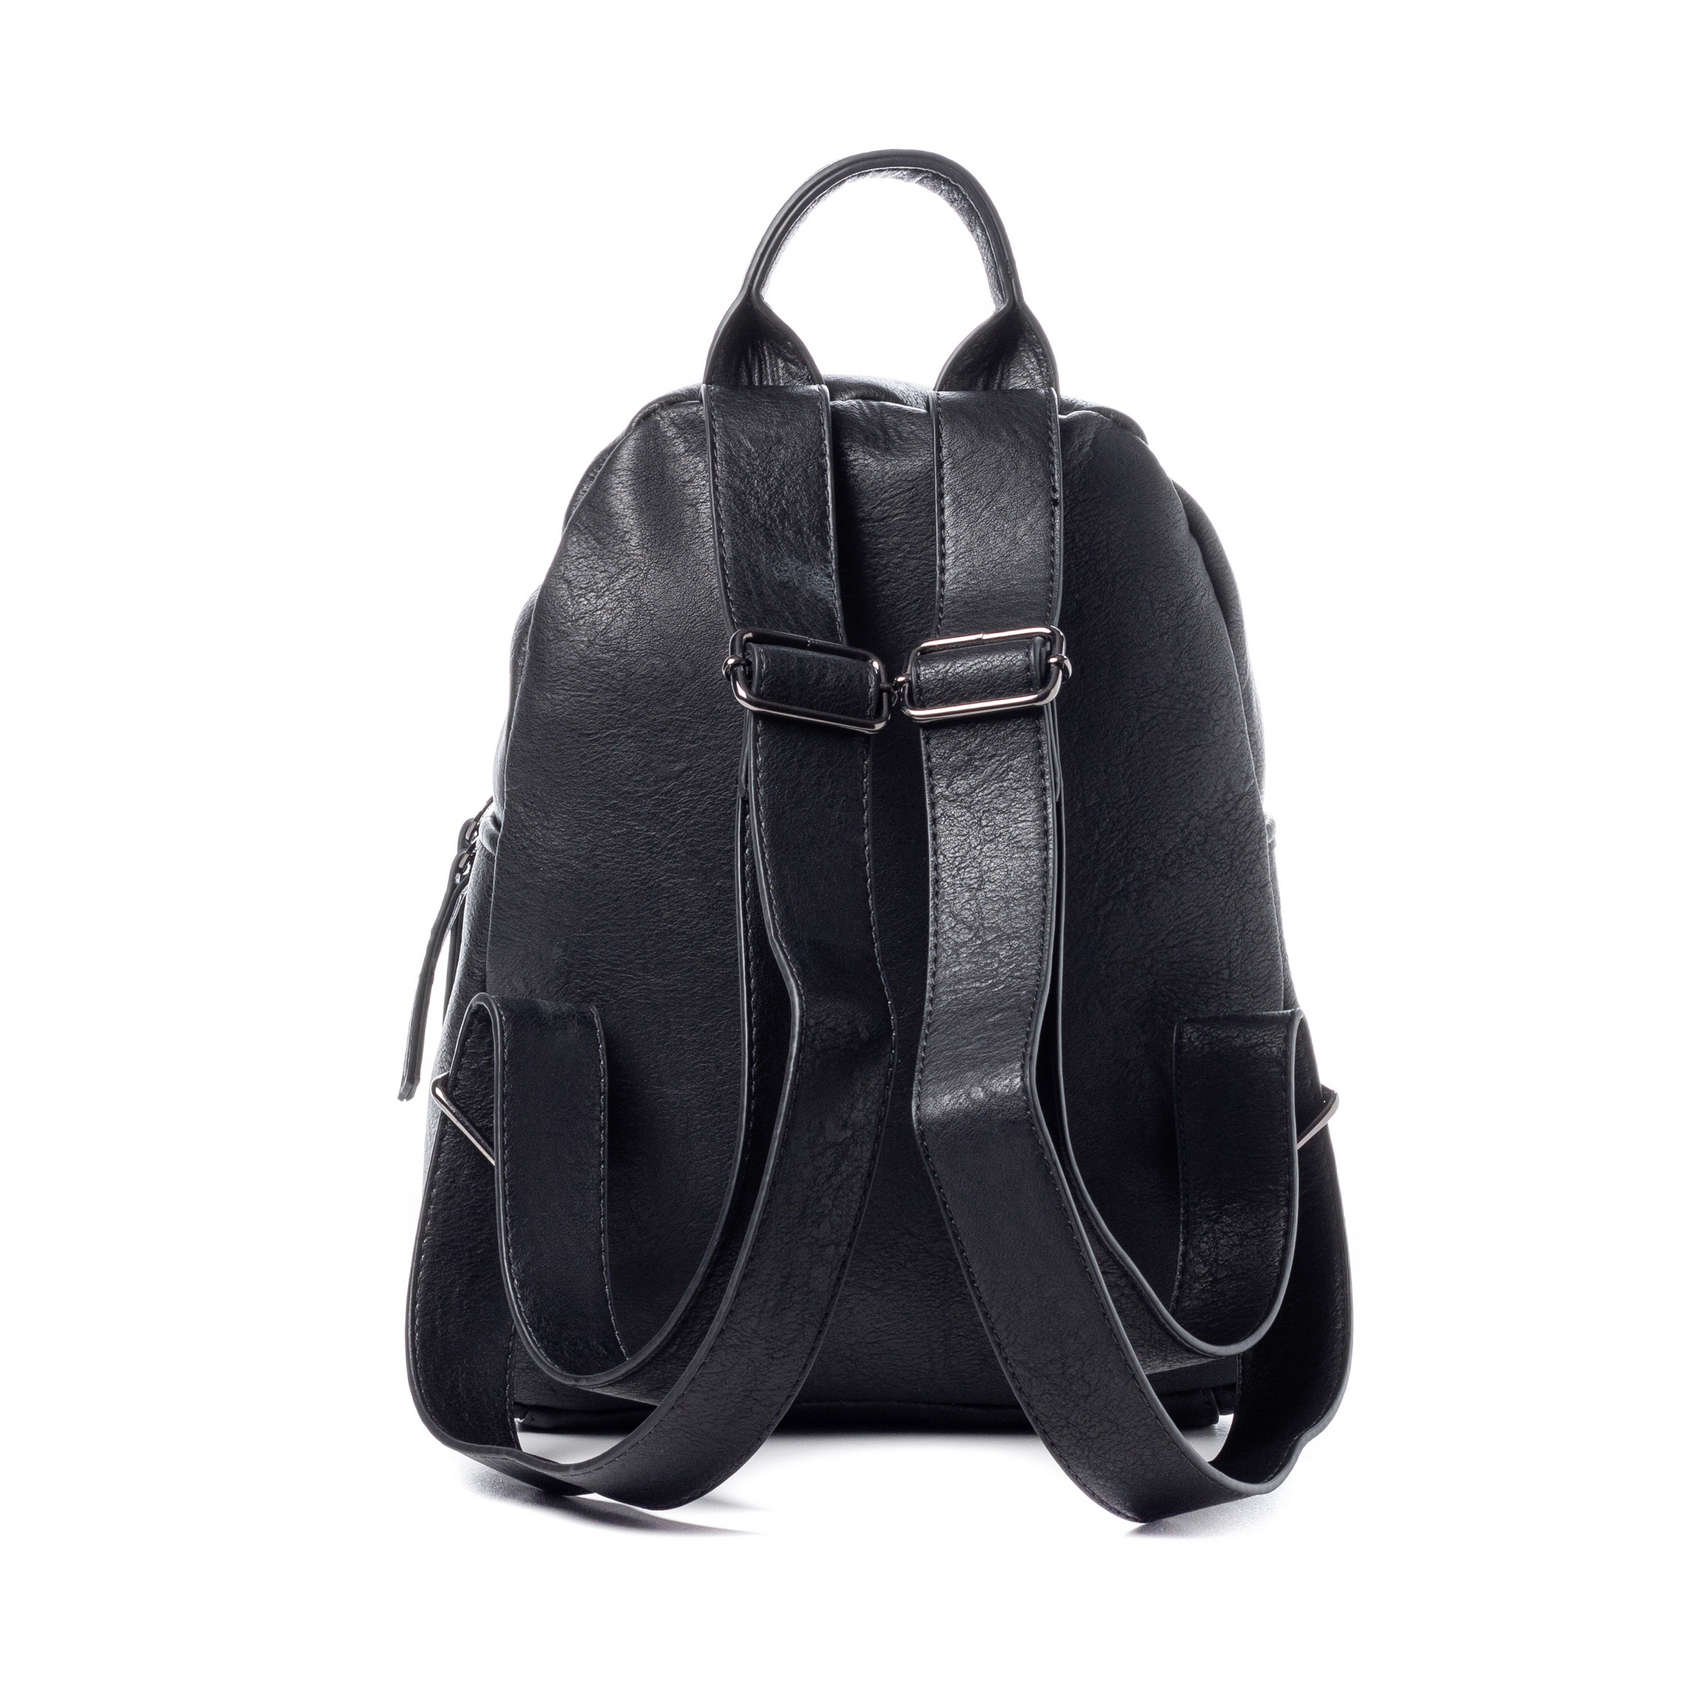 MARK BACKPACK BLACK